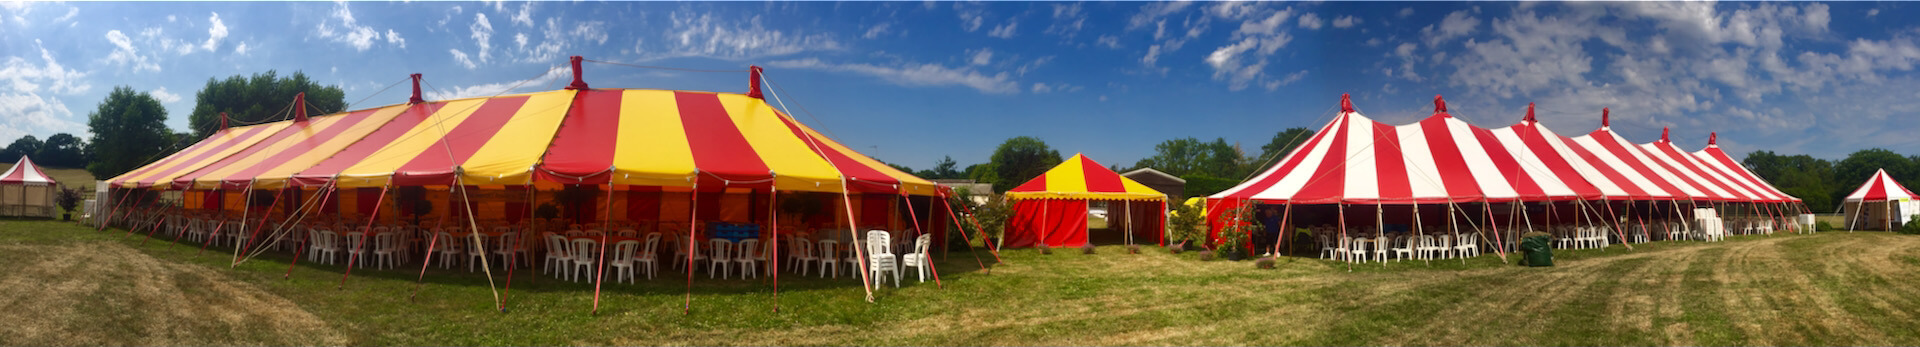 2 colourful large marquees